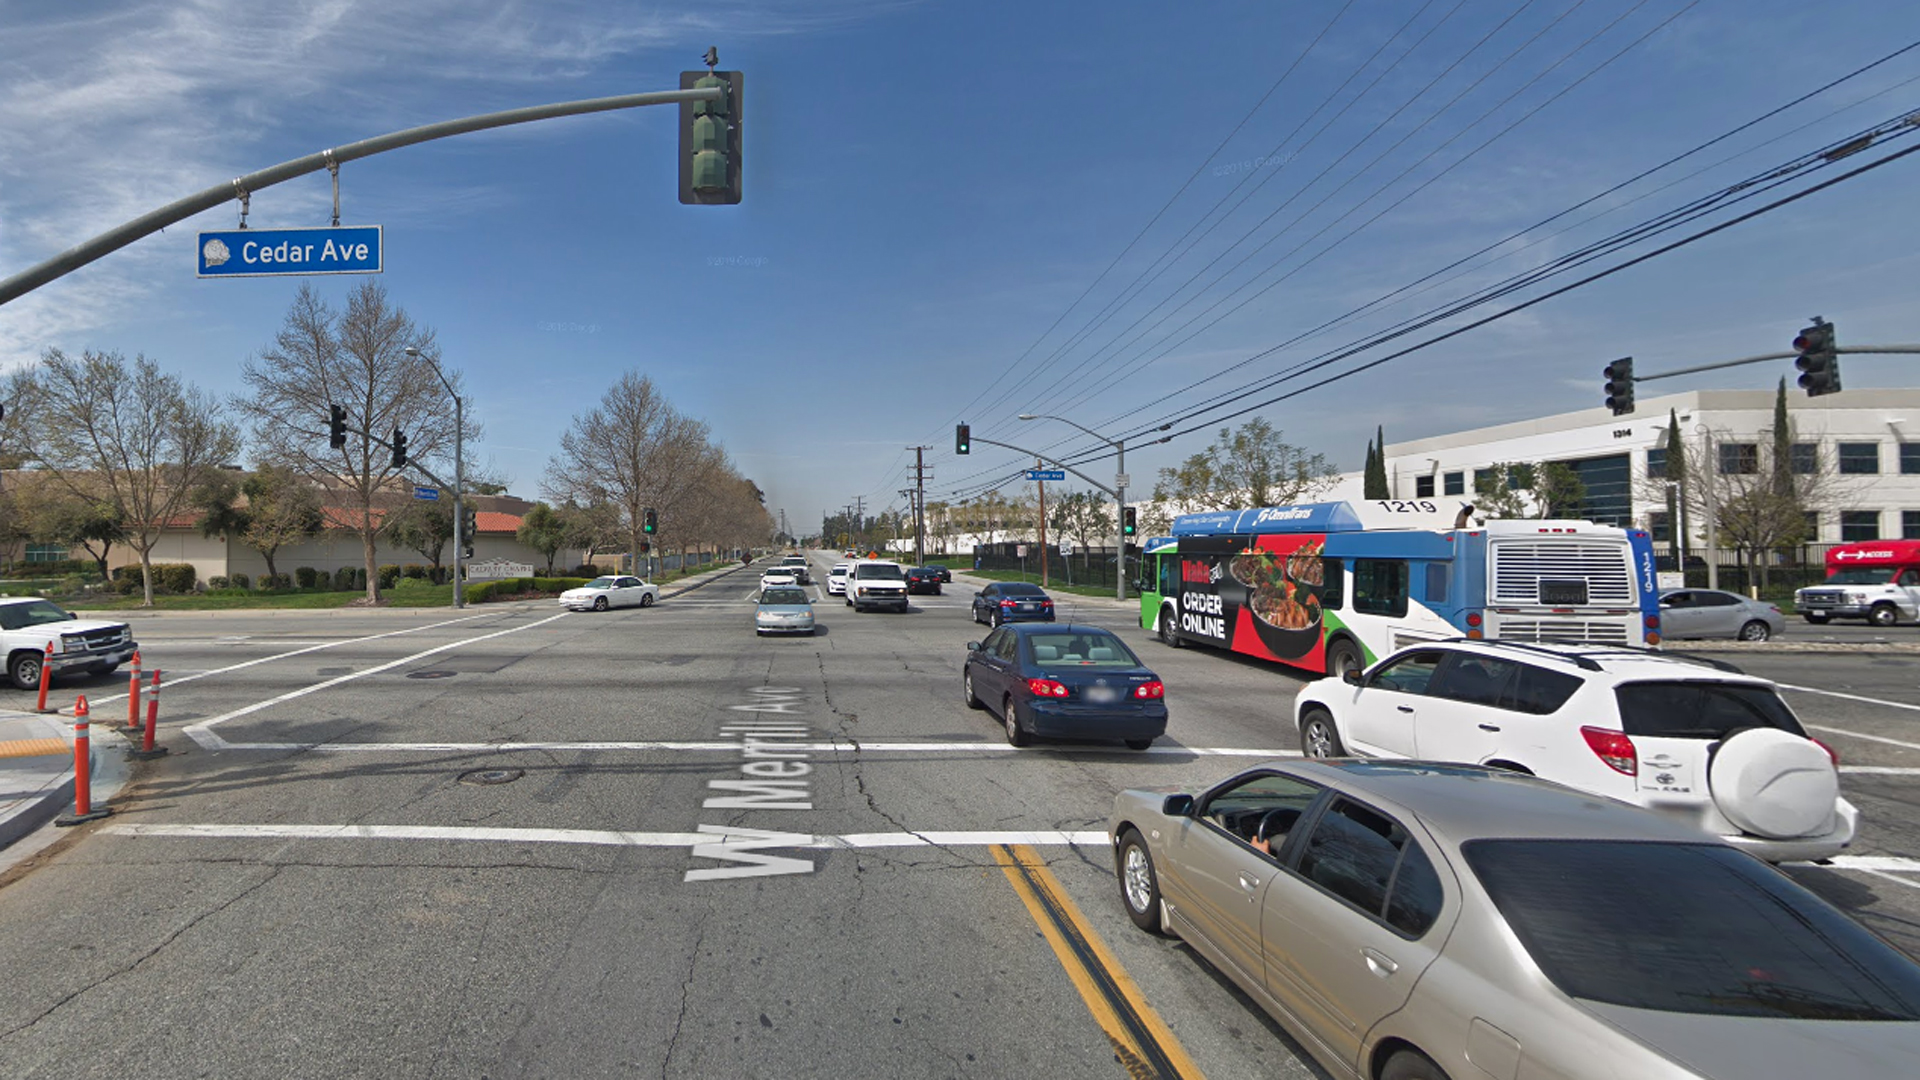 The intersection of Merrill and Cedar avenues in Rialto is seen in a Google Maps Street View image.